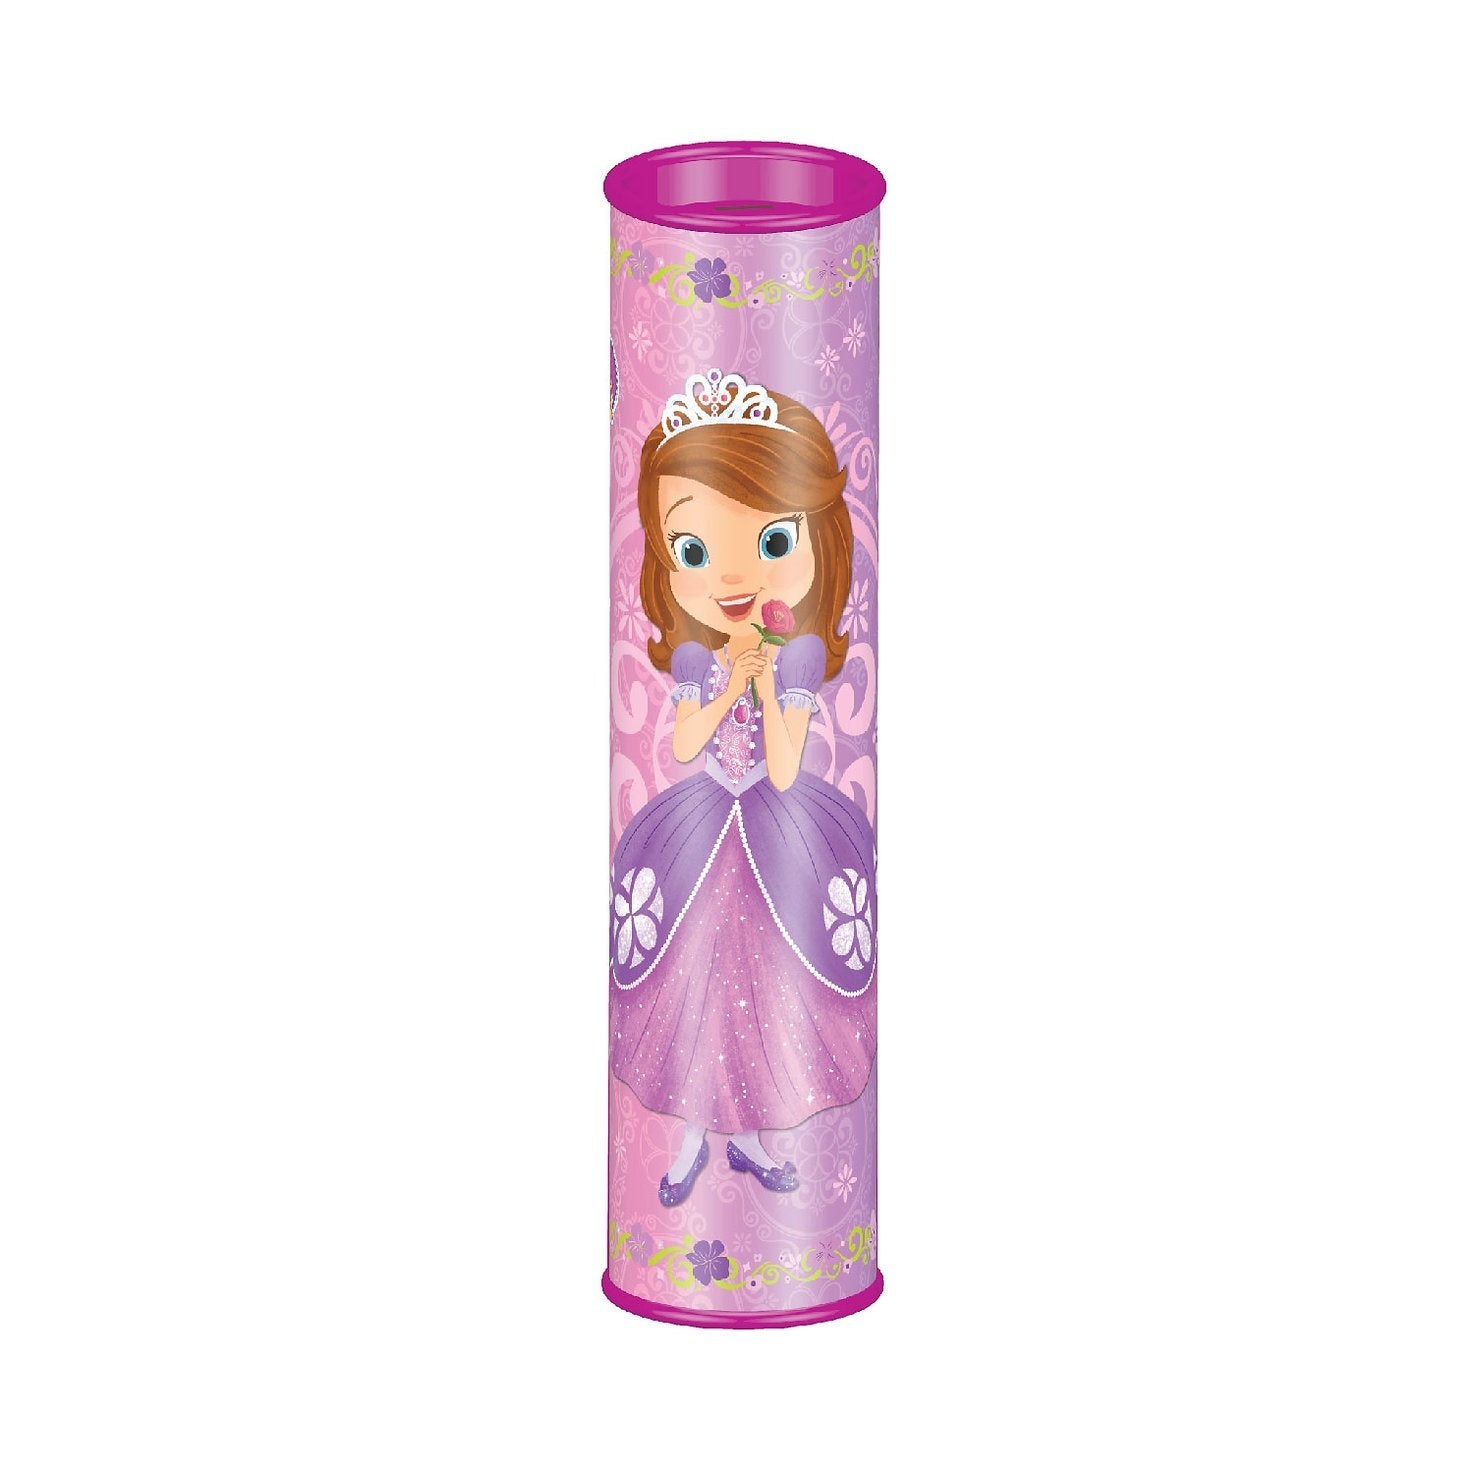 Sofia the First Footlong Coinbank